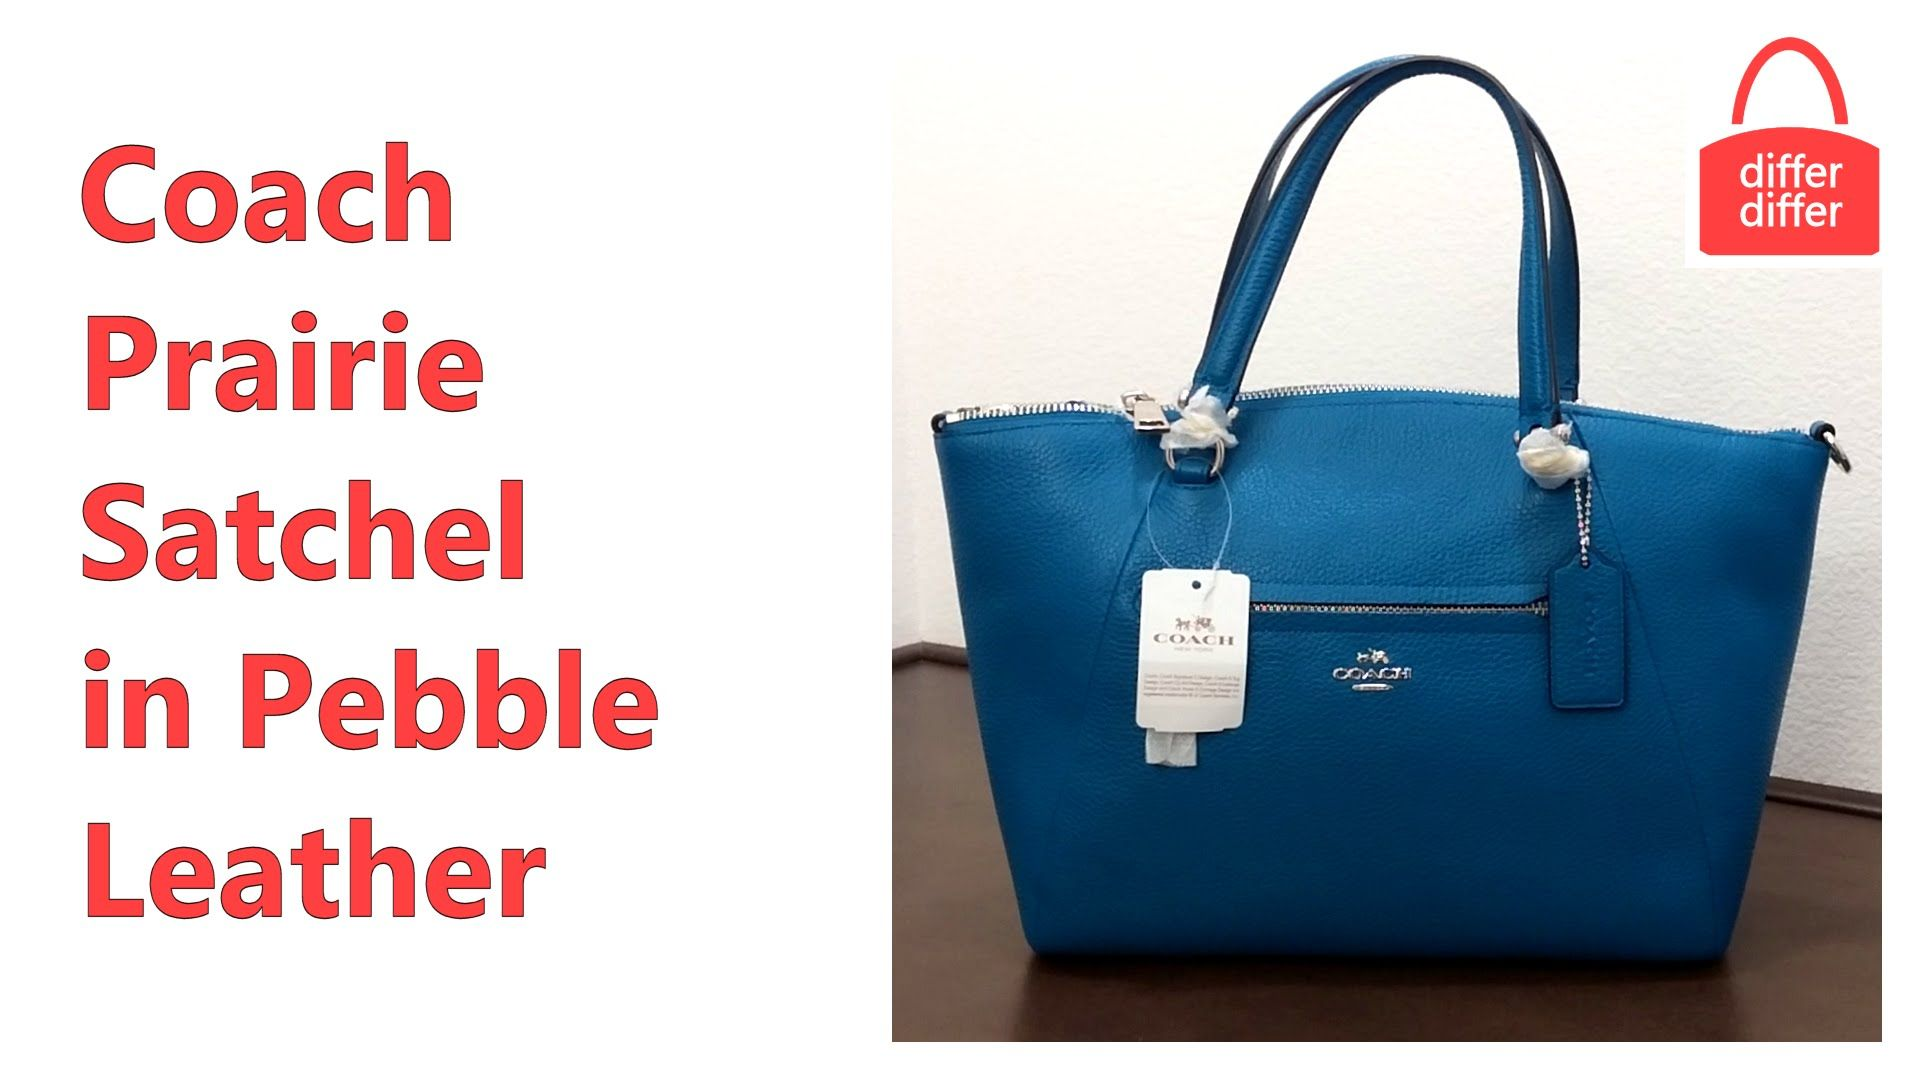 766a393f2219 Coach Prairie Satchel in Pebble Leather 34340